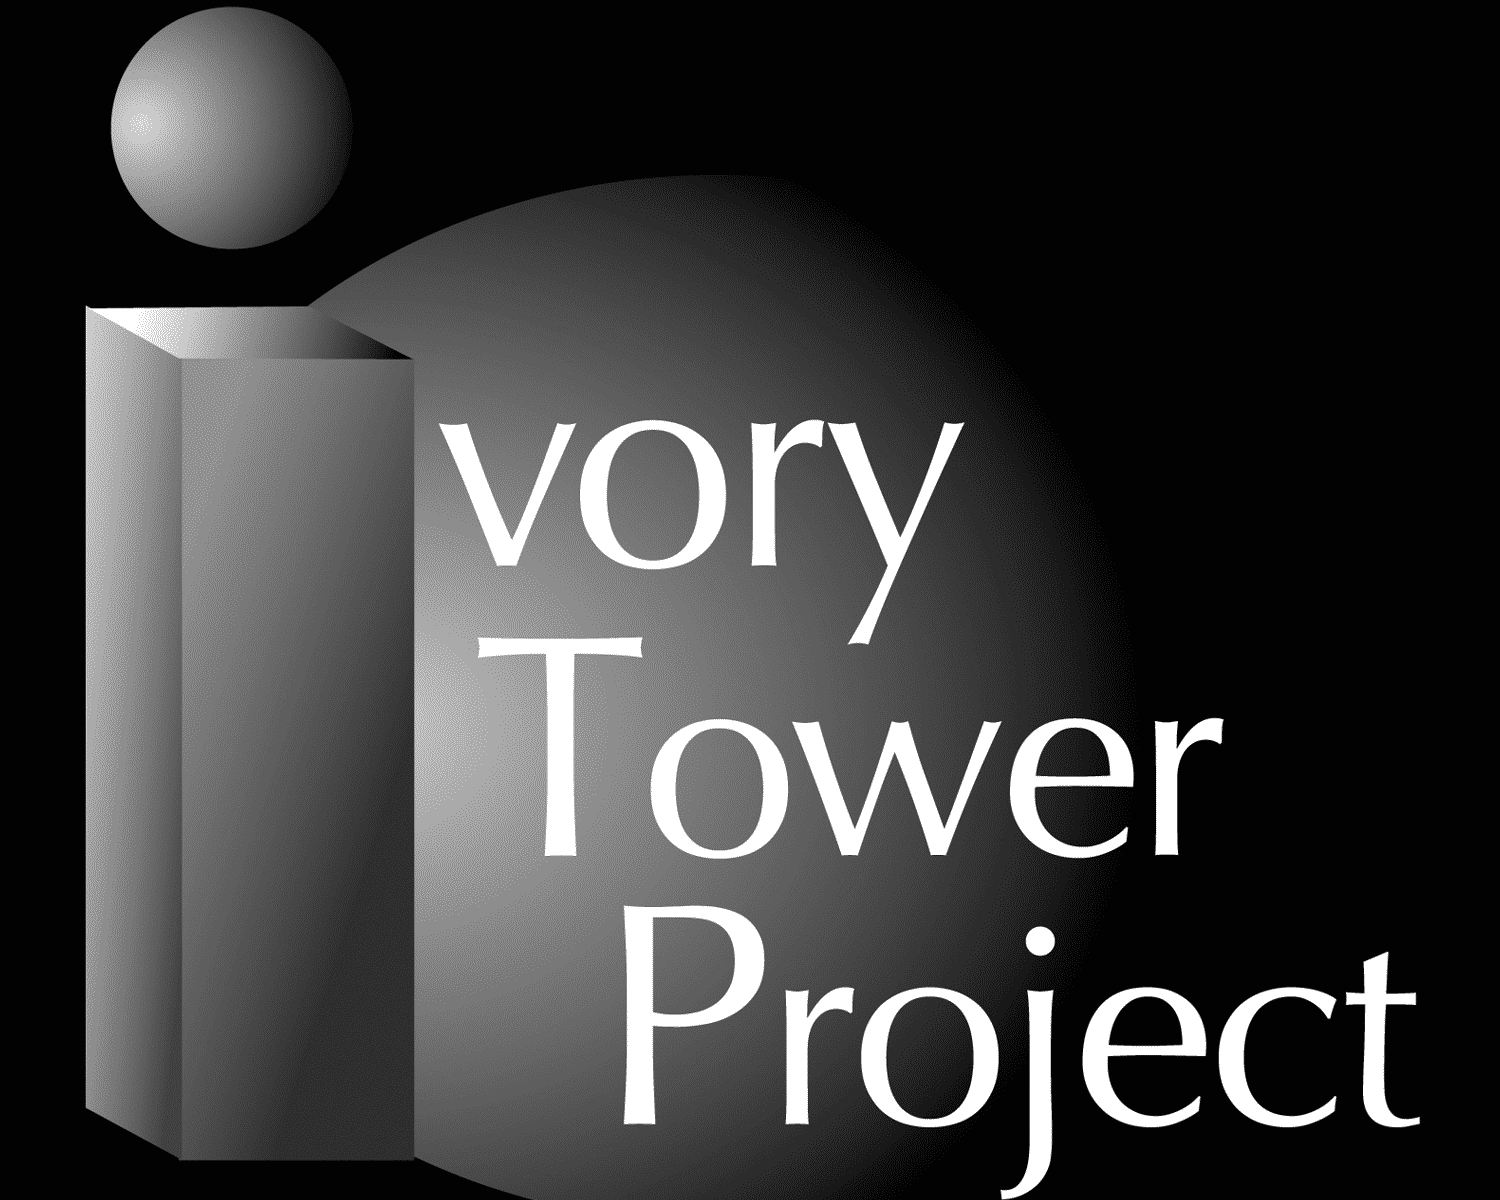 Ivory Tower Project Independant Rock Old School - Artists